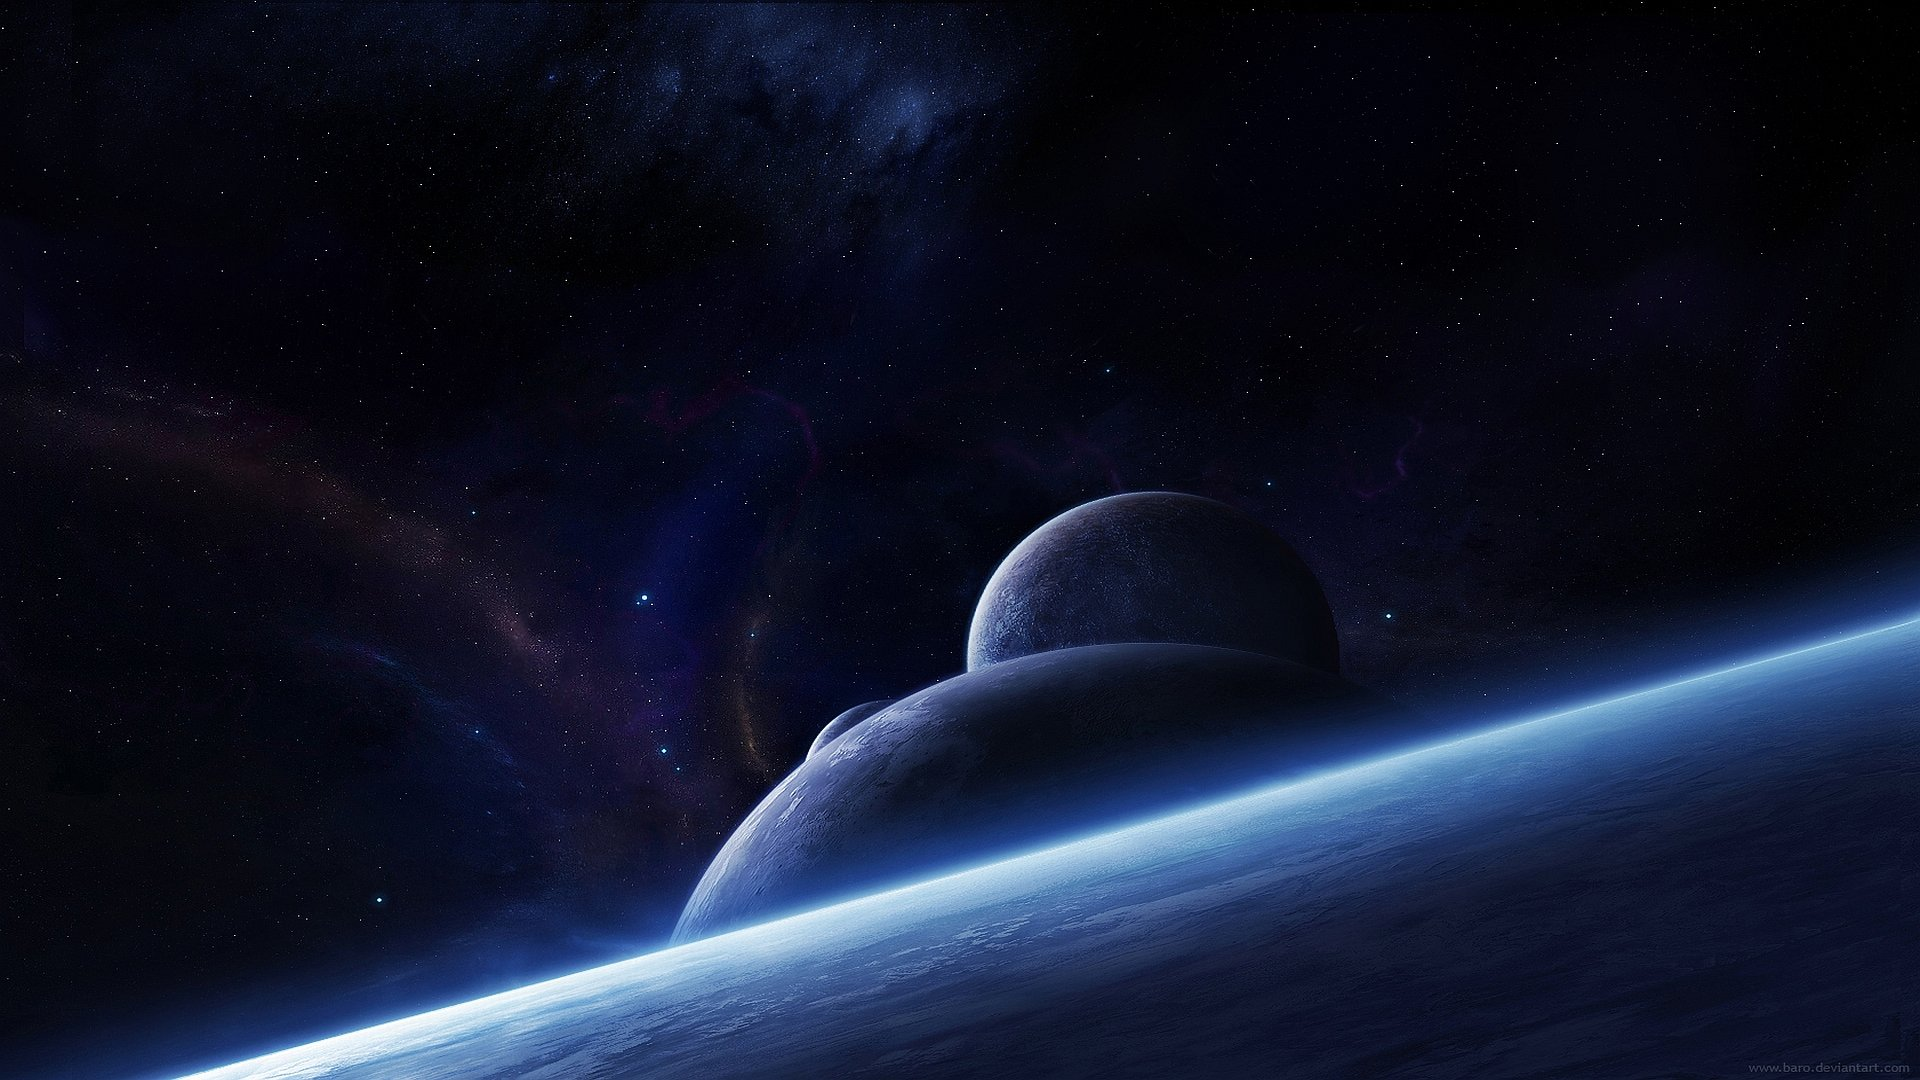 free cool space high quality wallpaper id:398634 for full hd desktop